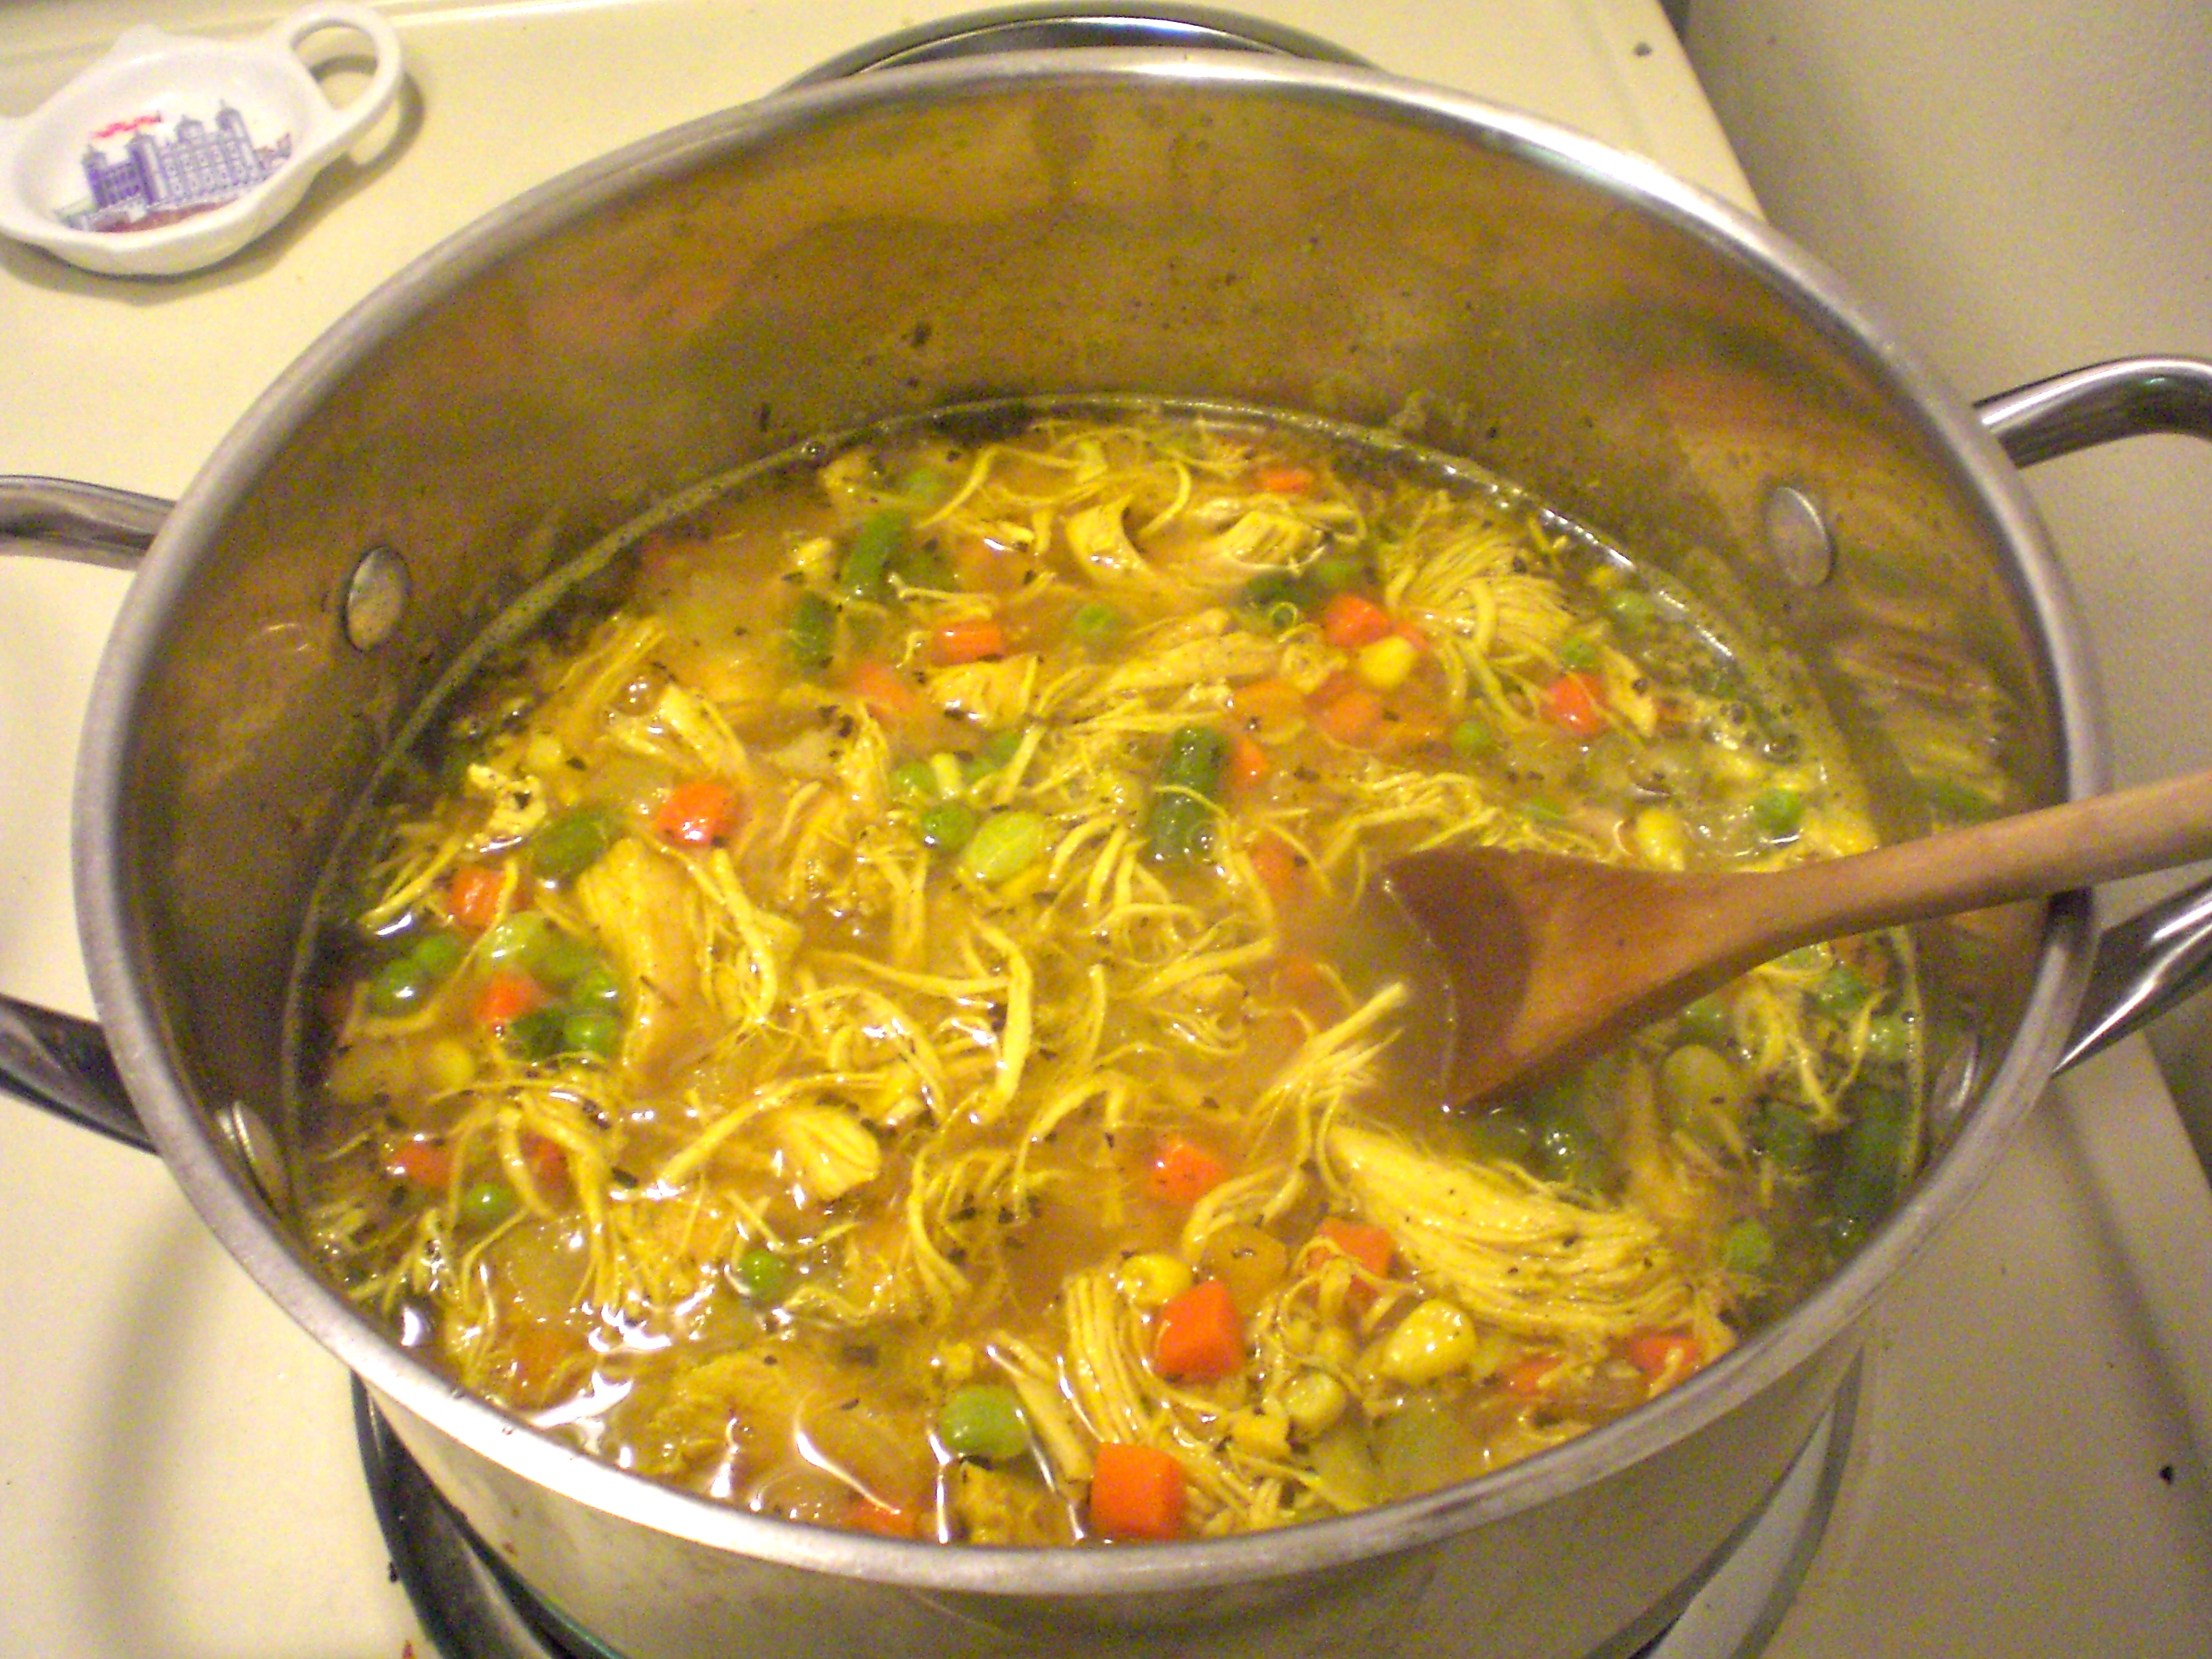 Chicken soup simply scrumptious by sarah for How do you make chicken noodle soup